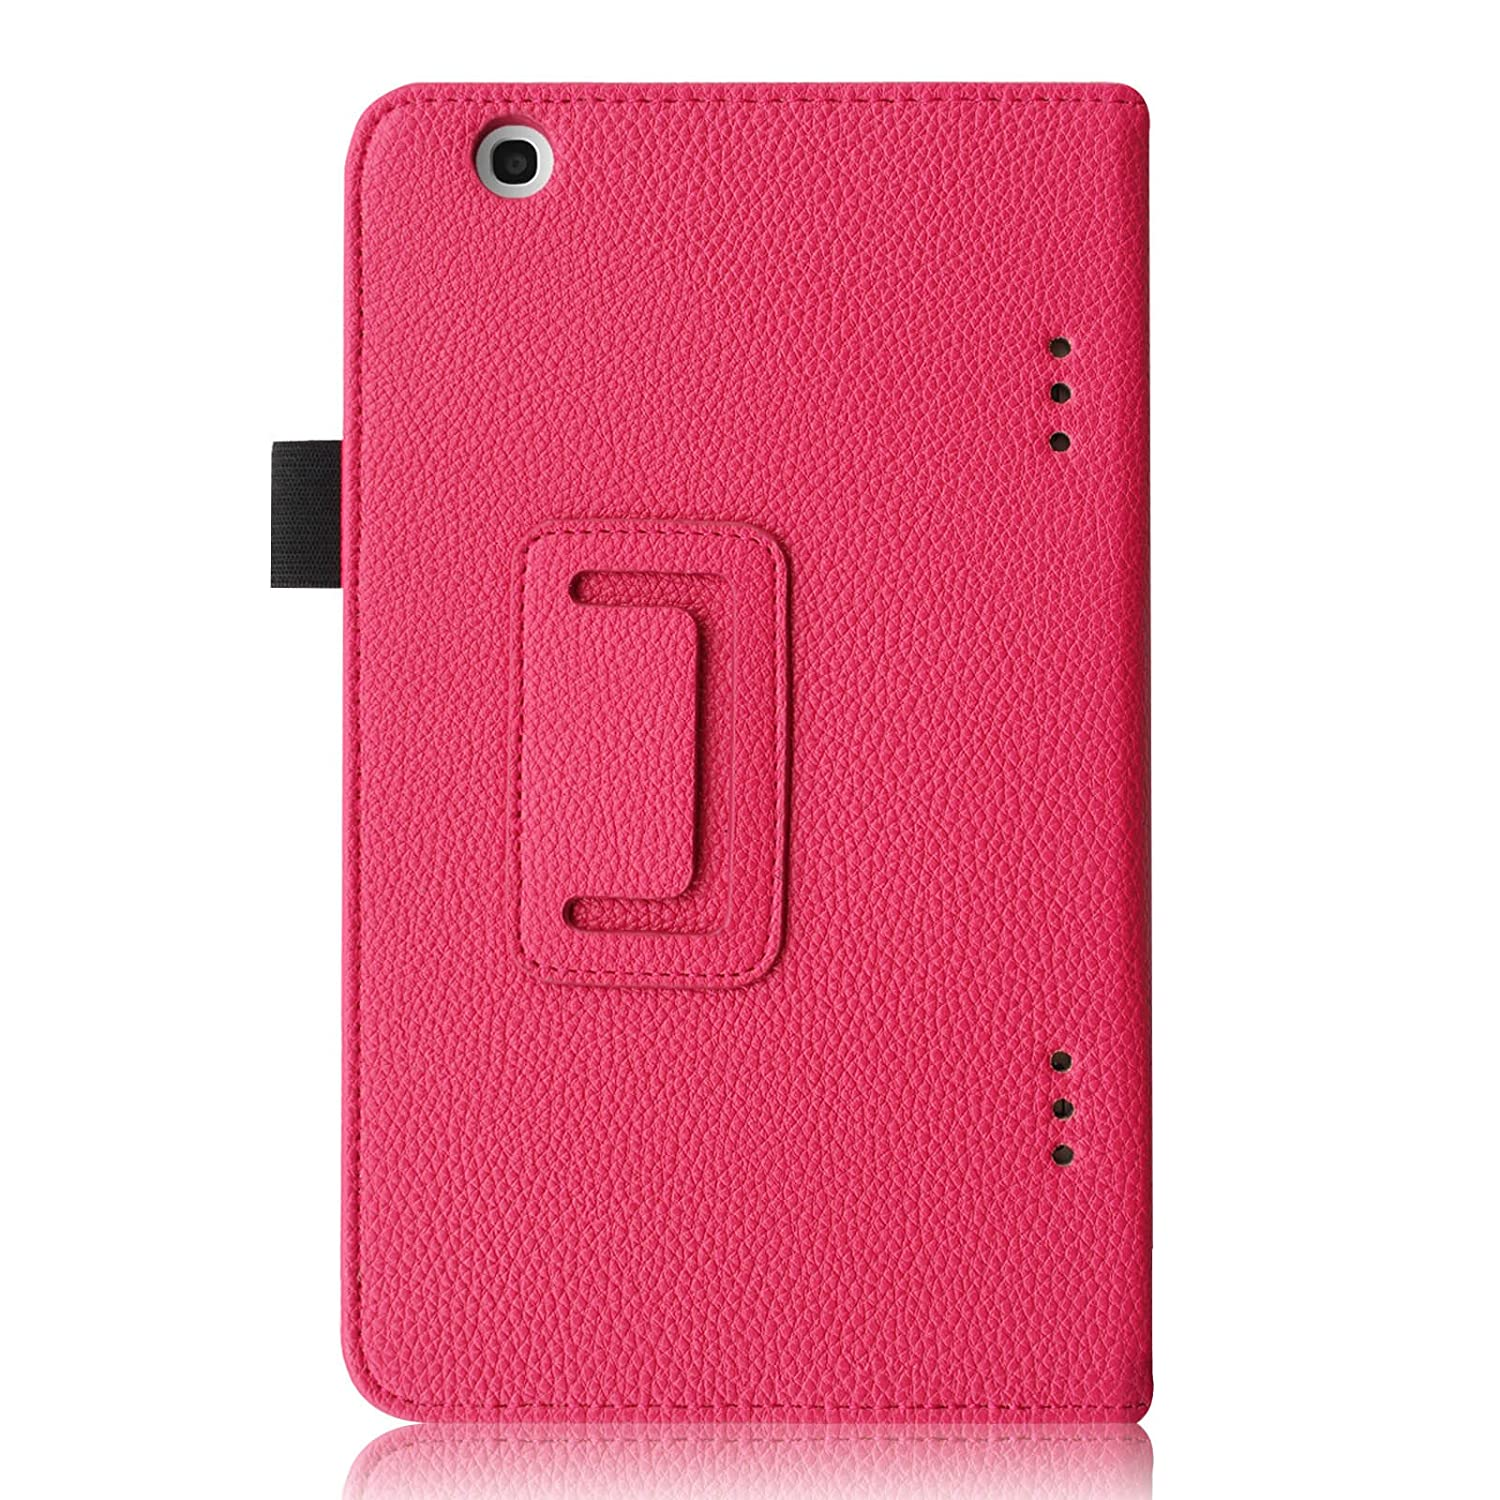 Cover for lg g pad / Minute maid kids